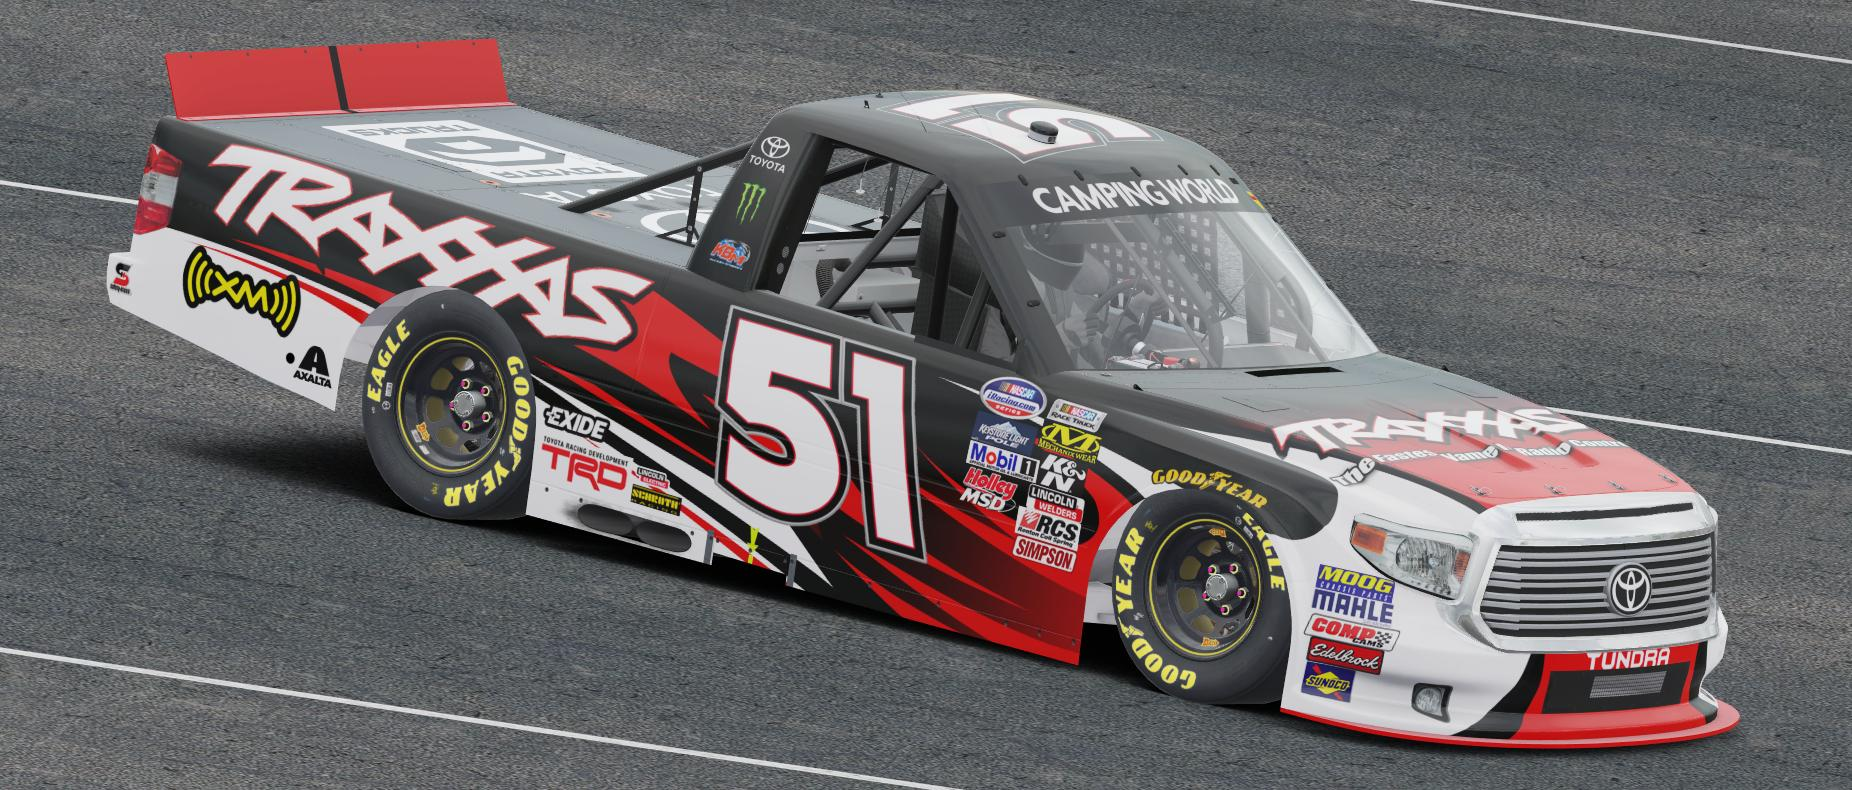 Preview of Kyle Busch Traxxas Tundra by Preston Pardus